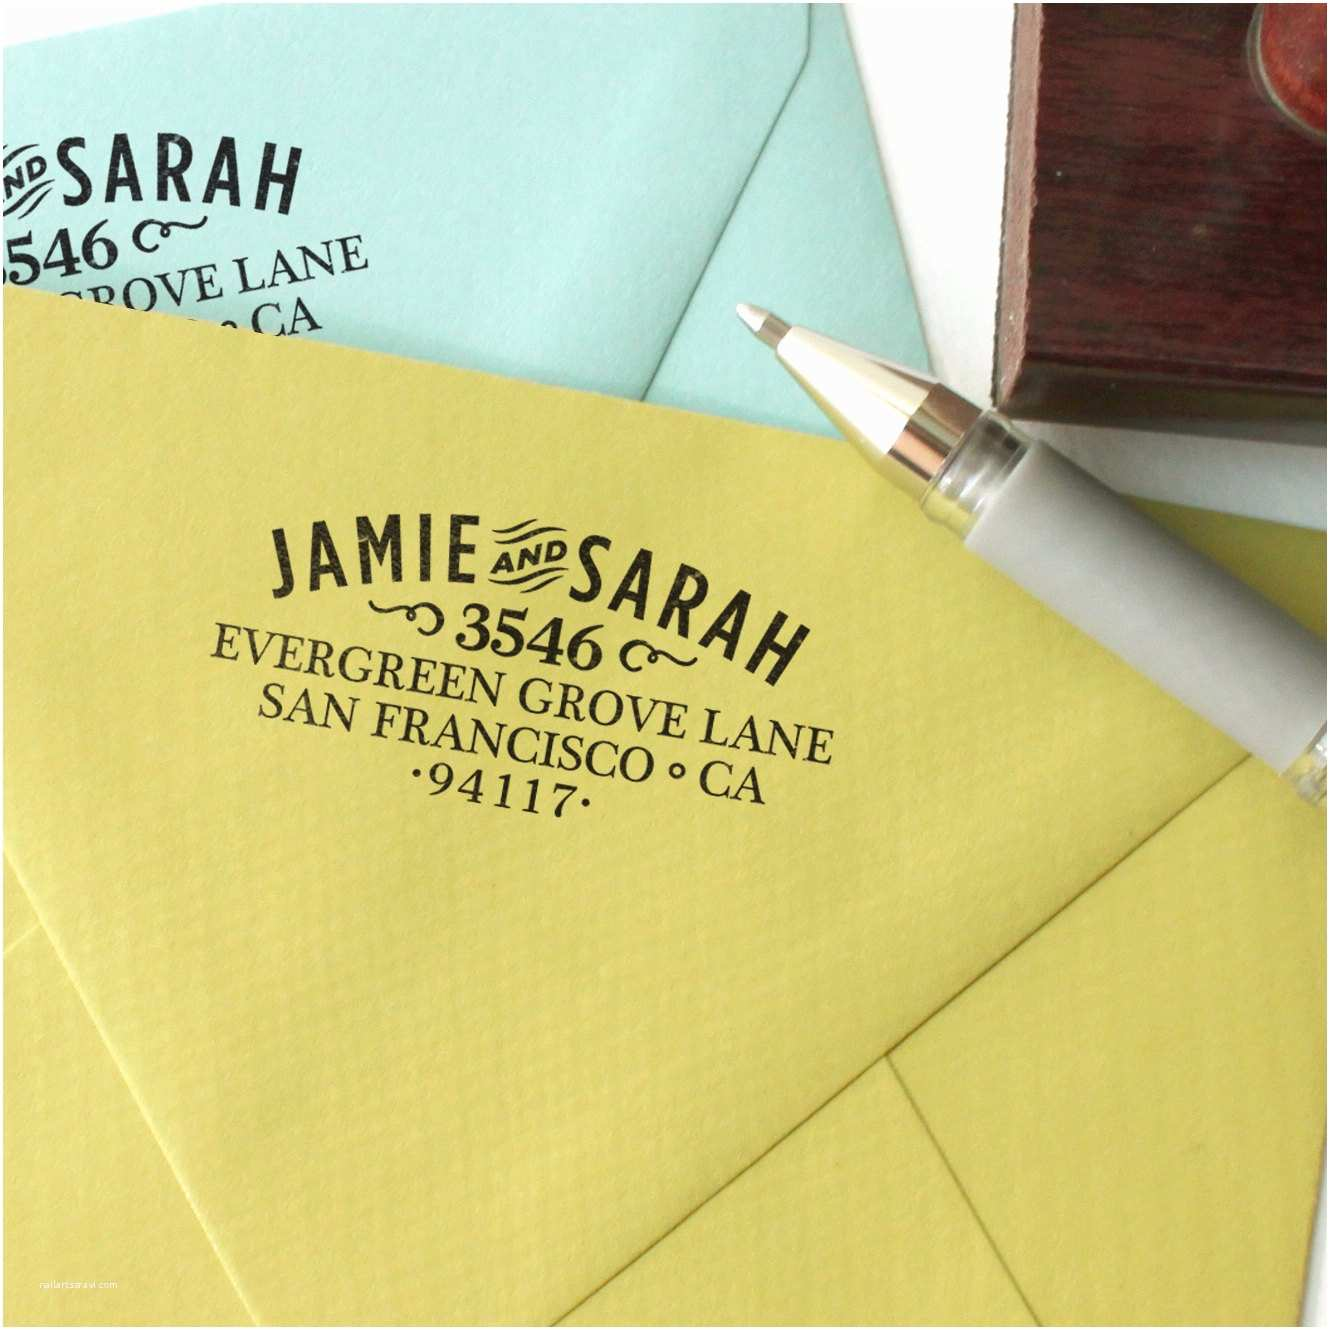 Clear Return Address Labels For Wedding Invitations Custom Return Address Stamp For All Those Thank You